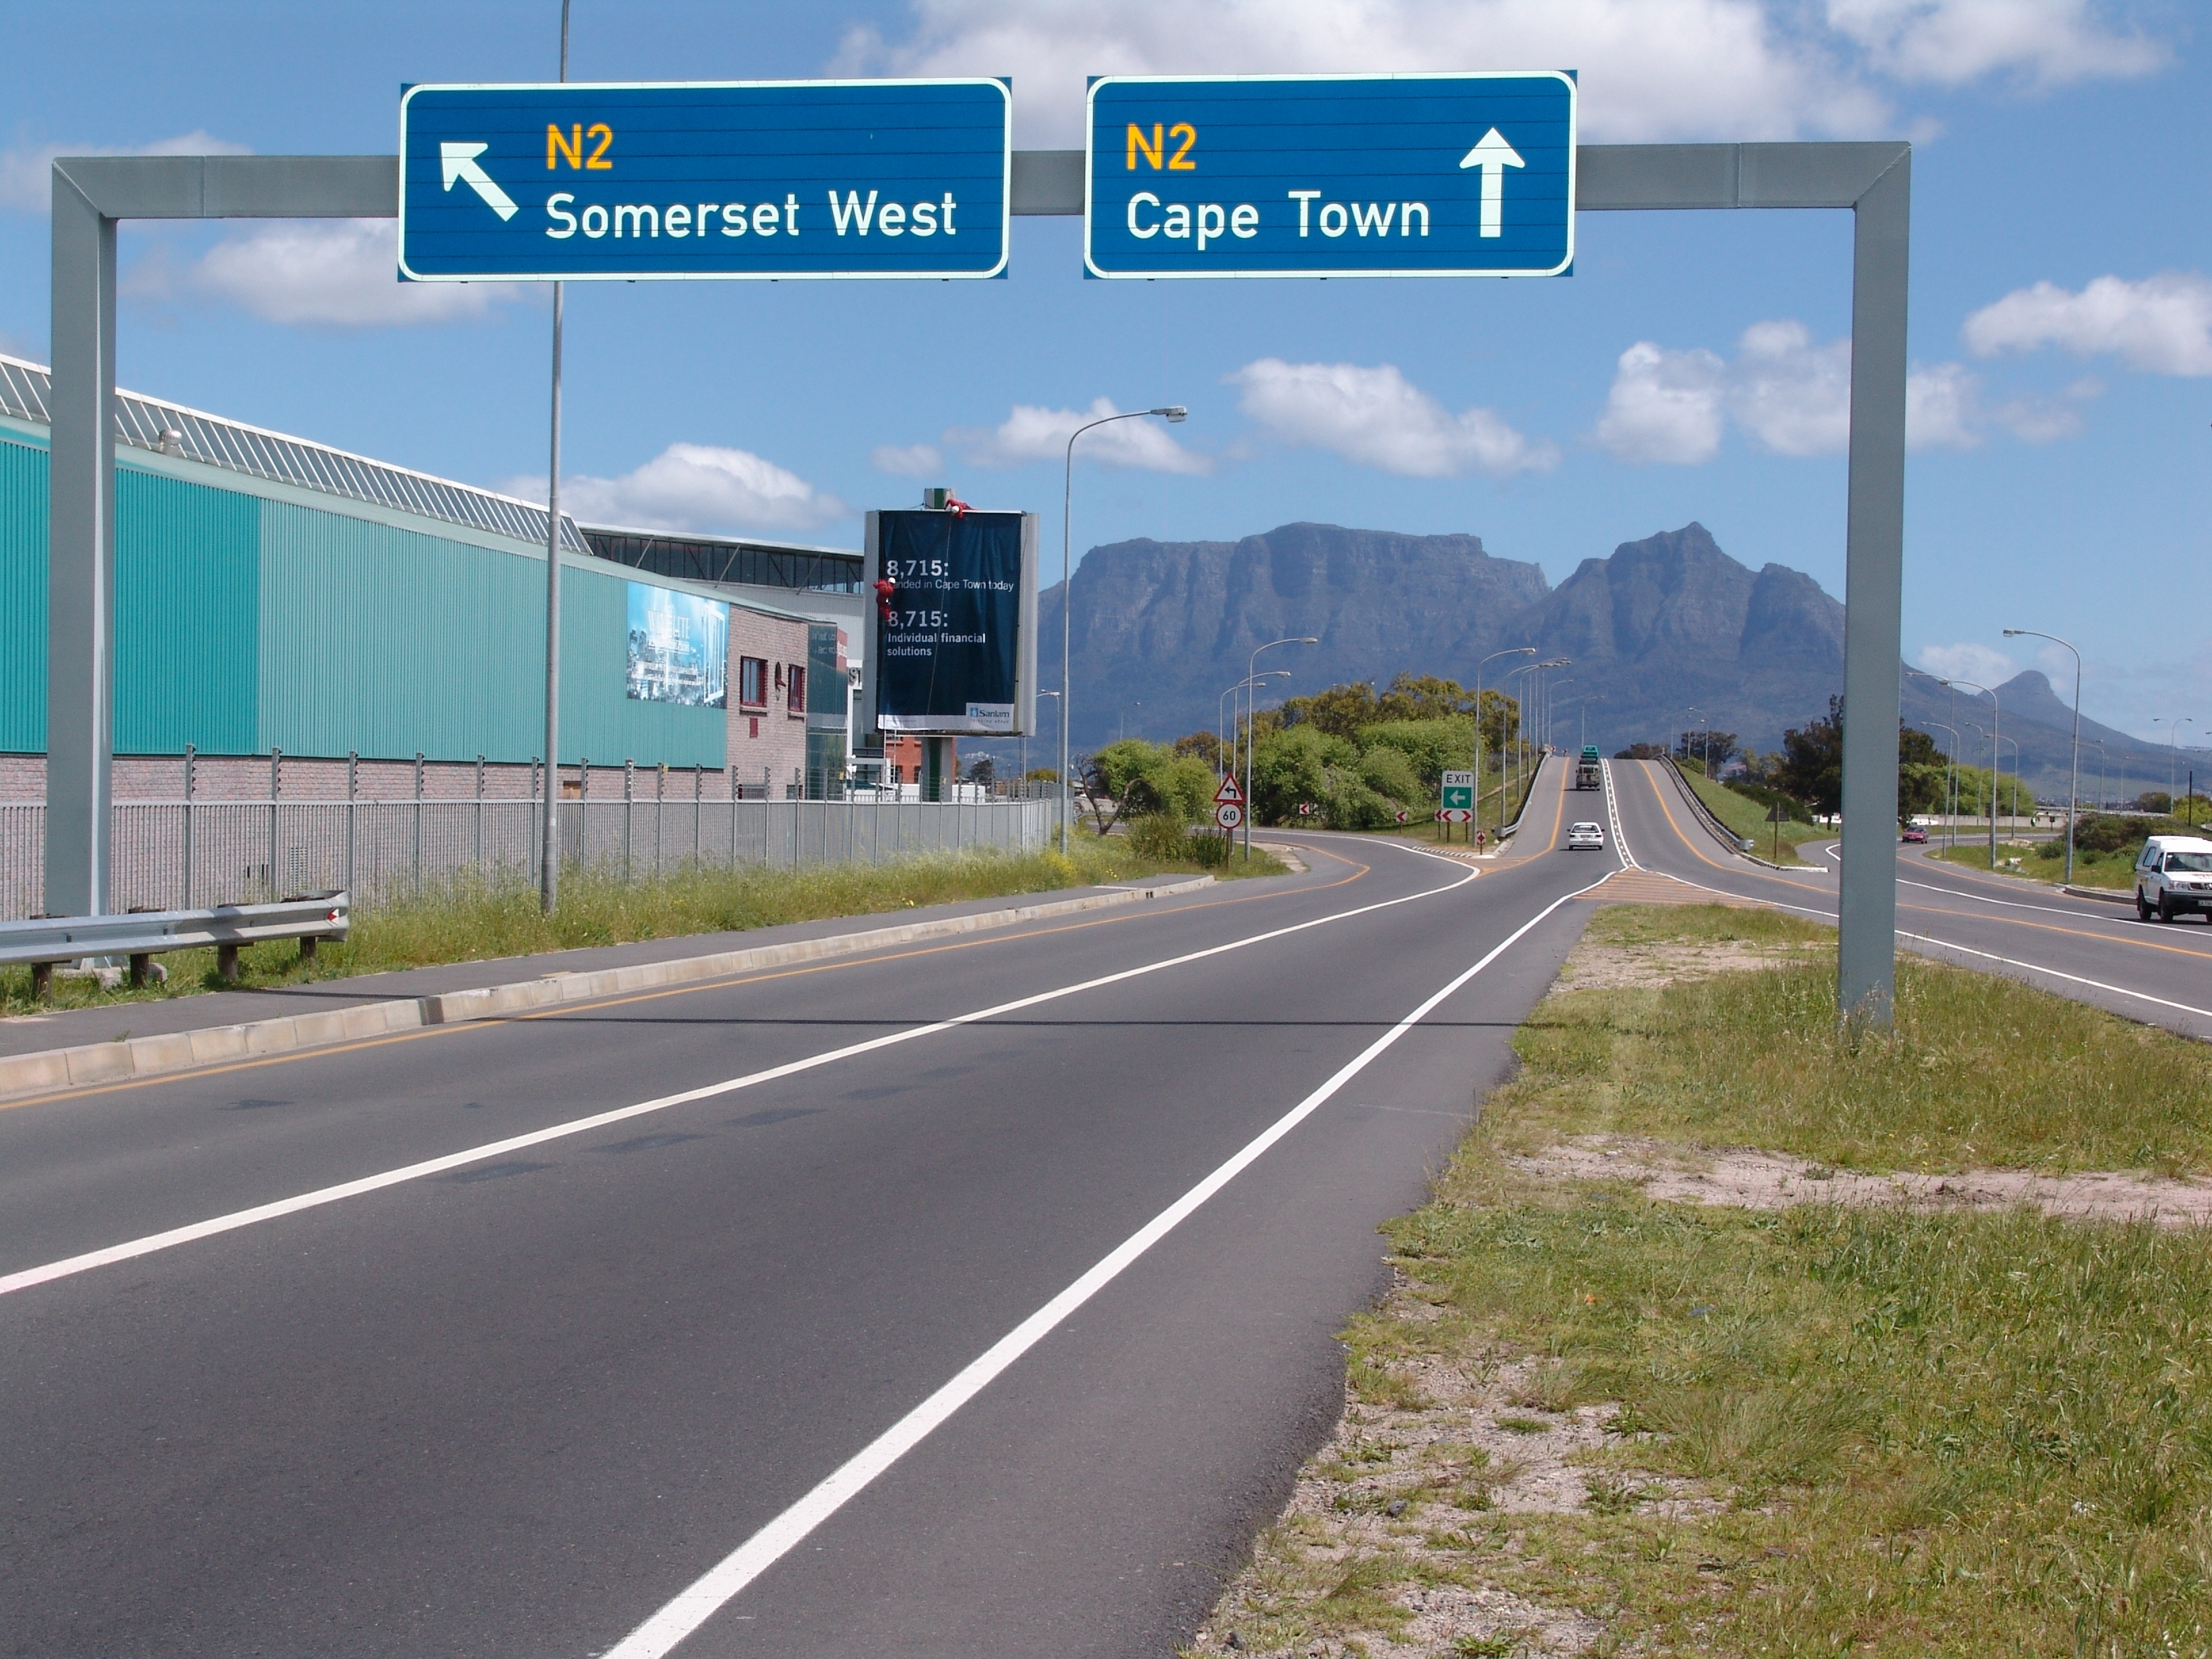 Cheap Flights From Johannesburg To Cape Town Jhb Cpt